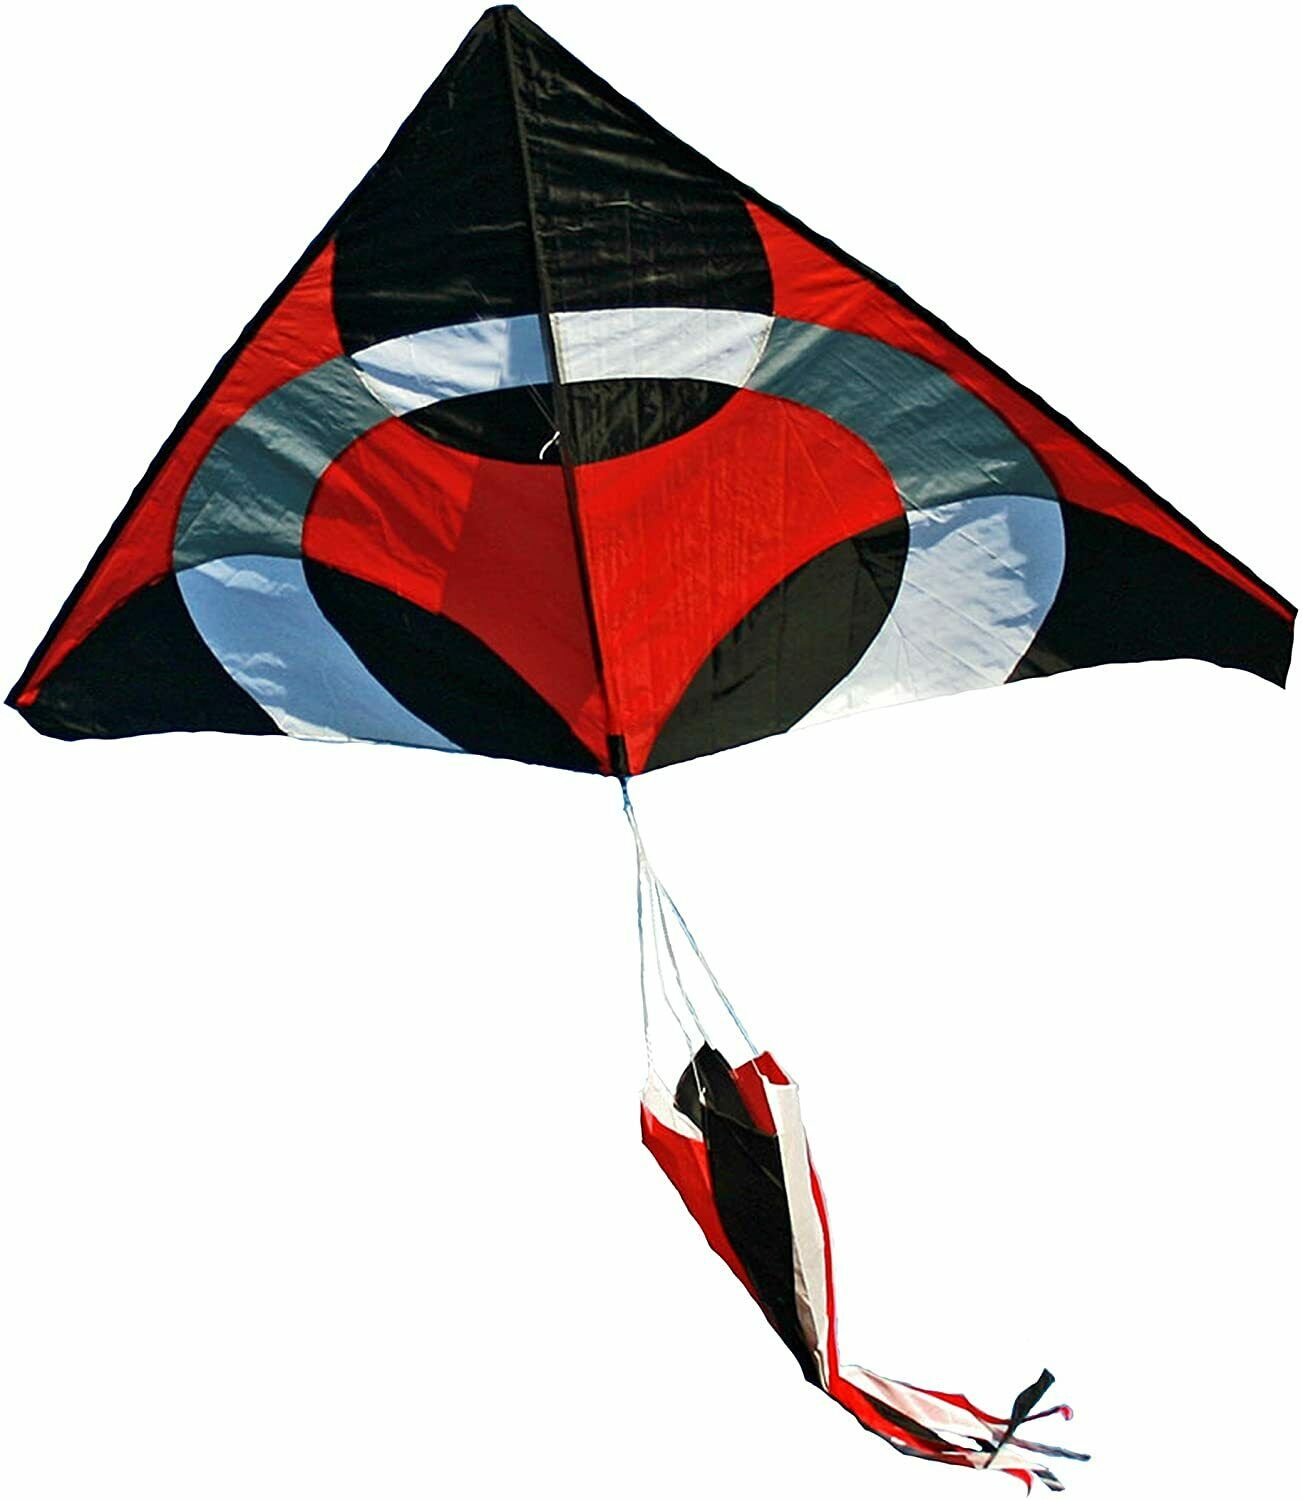 Giant delta Ring iKite Delta Shape Premium Large Kite  6FT W